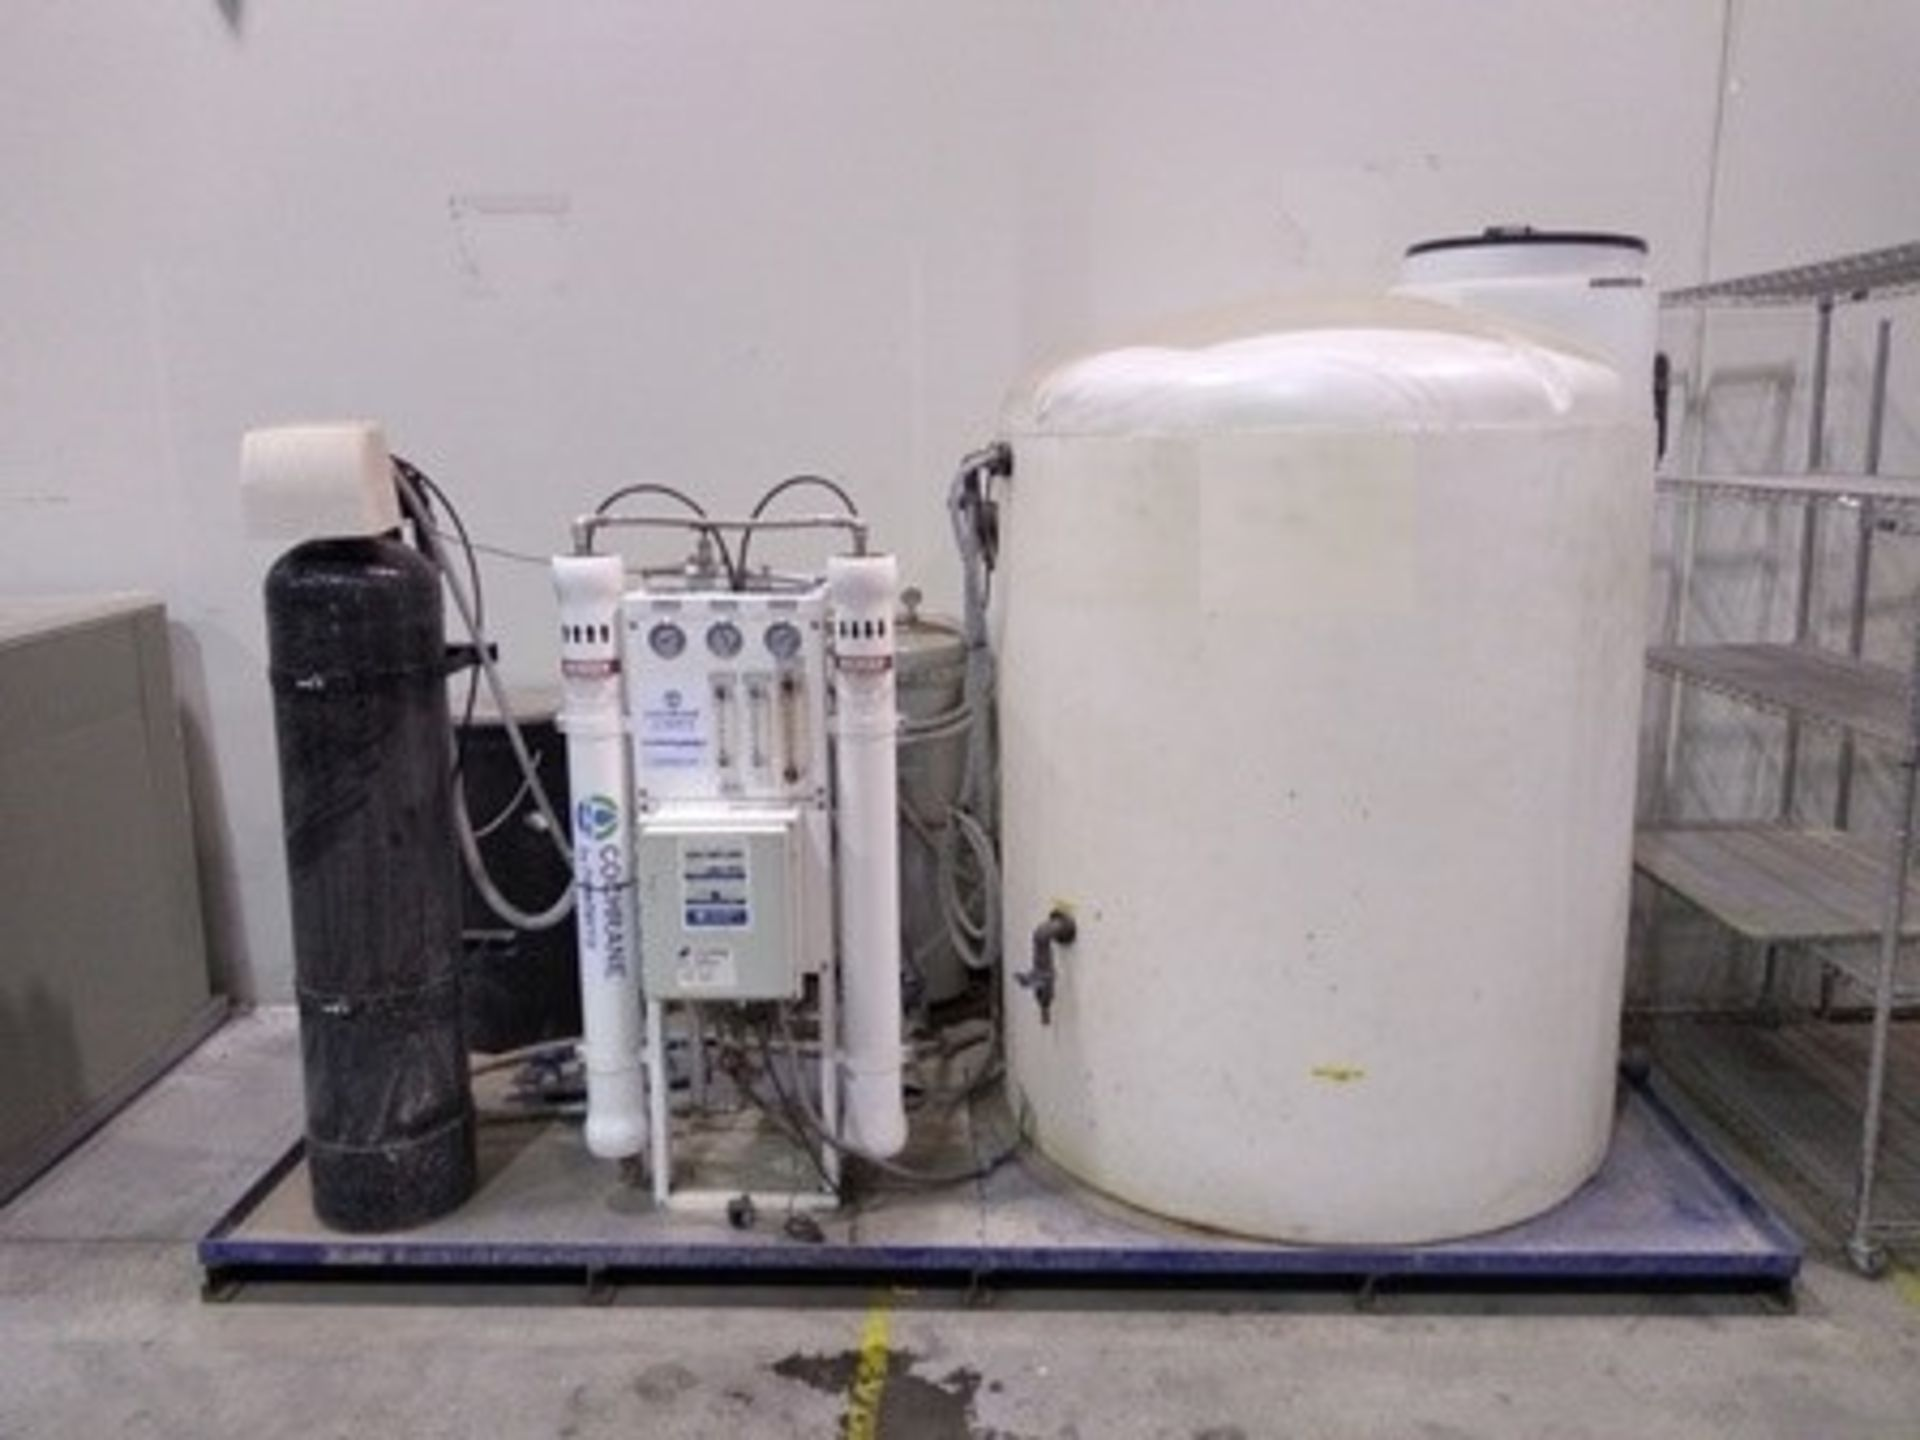 Lot 25 - Cochrante reverse osmosis water purification system with water tank of 660 gal.